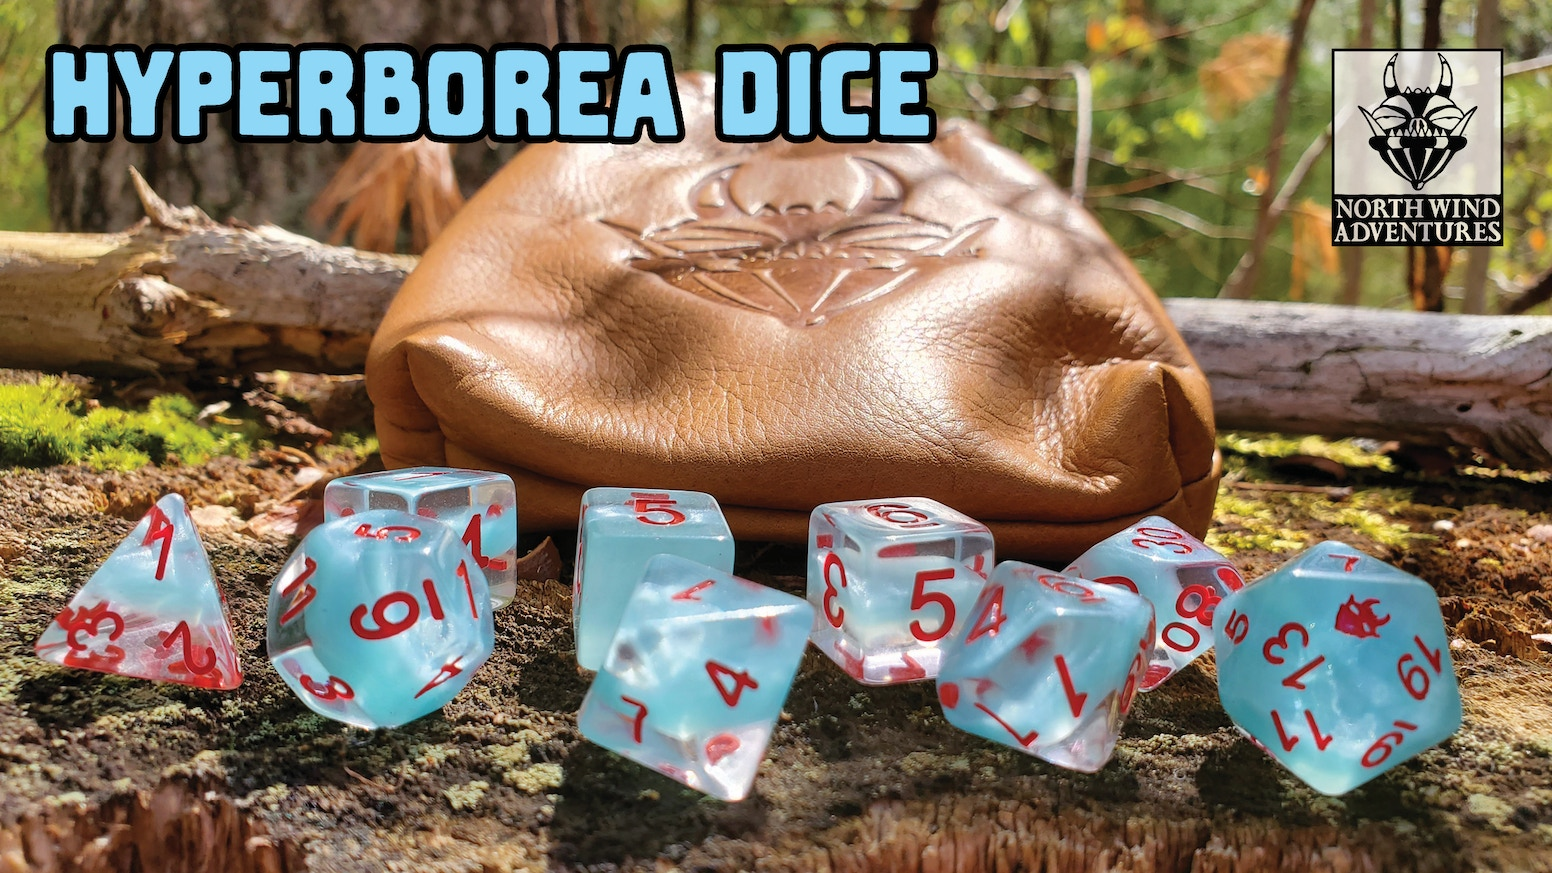 tabletop RPG dice and leather pouch